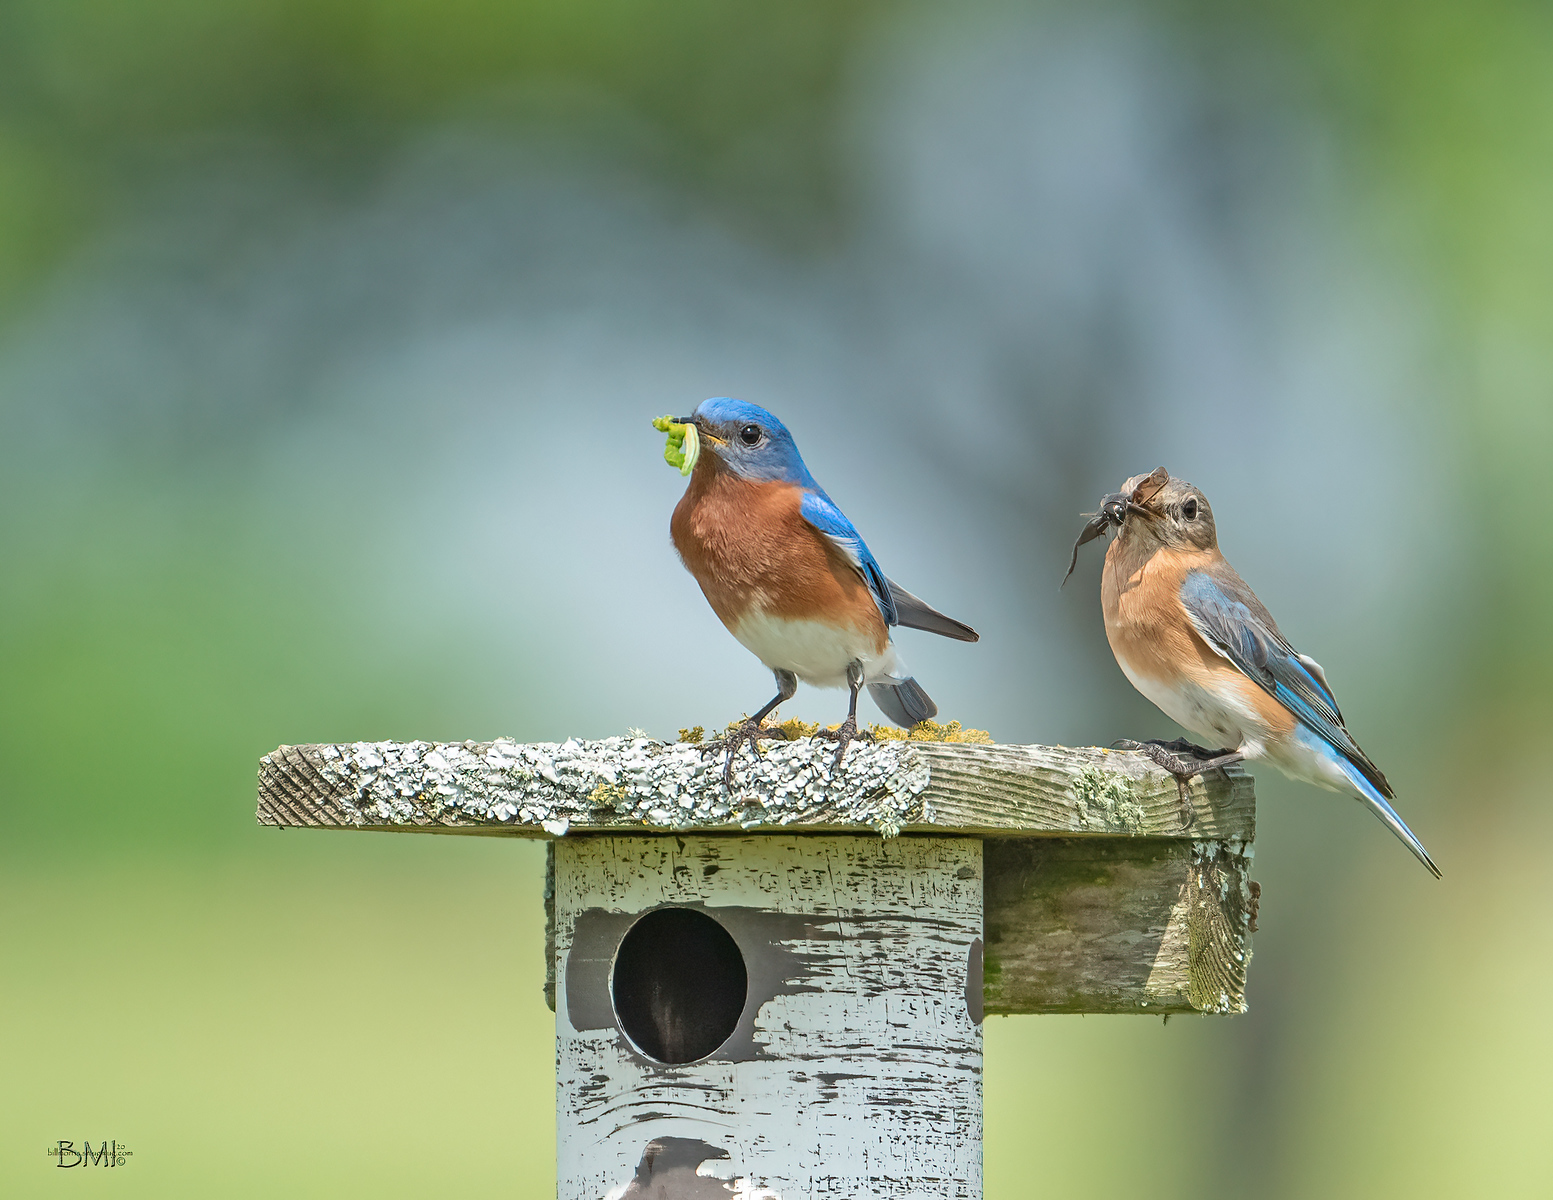 IMAGE: https://photos.smugmug.com/Beautyinthetreesandintheair/Eastern-bluebirds-Spring-2020/i-jxNqxP7/0/78d97edd/X3/Eastern%20bluebird_9_3-27-2020-62-X3.jpg